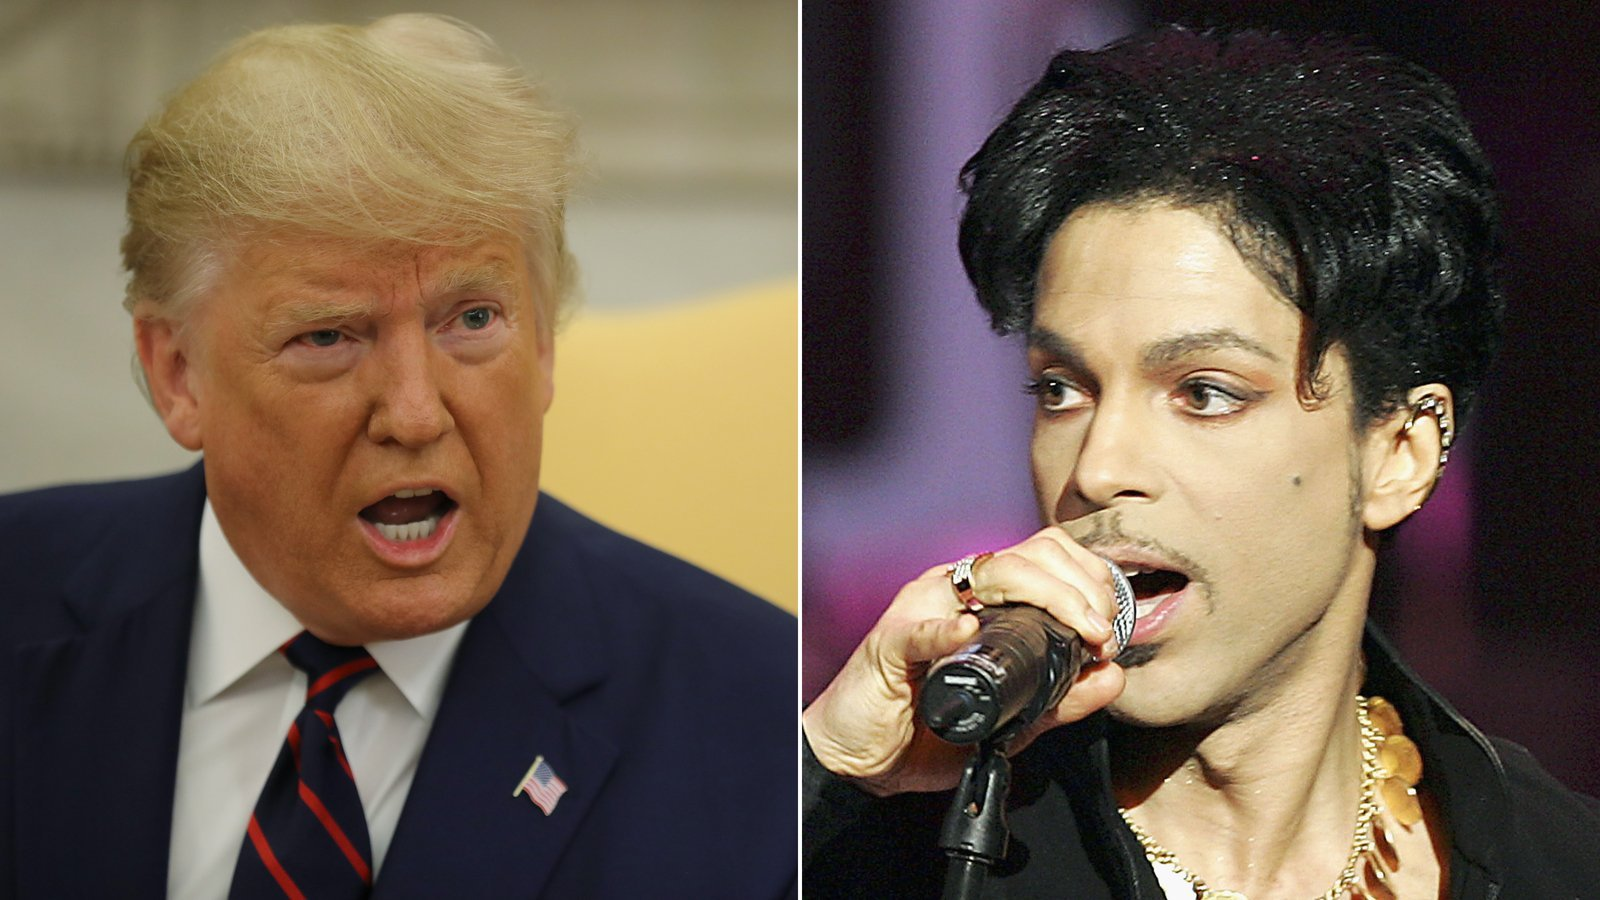 Prince's estate objects (again) to Trump campaign playing 'Purple Rain' at rally